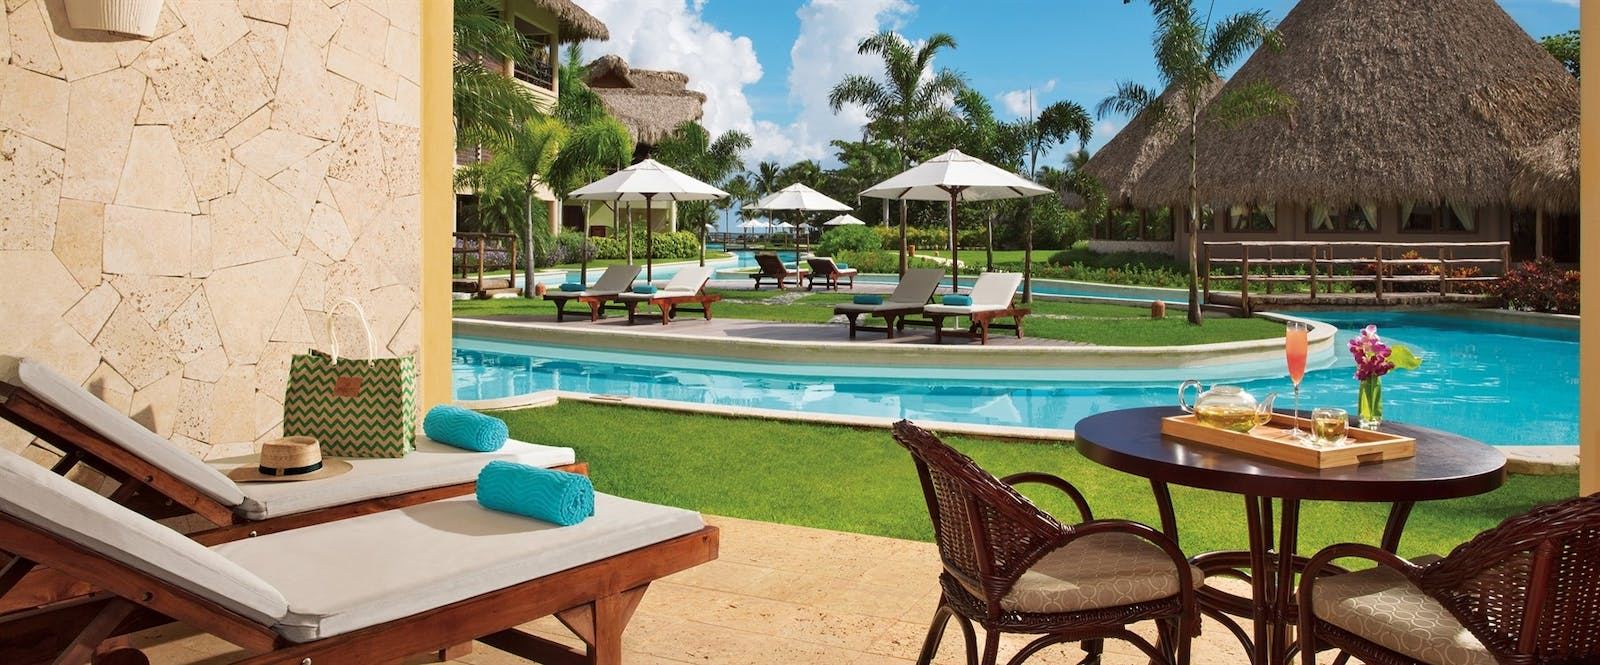 Swim-up Junior Suite at Zoetry Agua Punta Cana, Dominican Republic